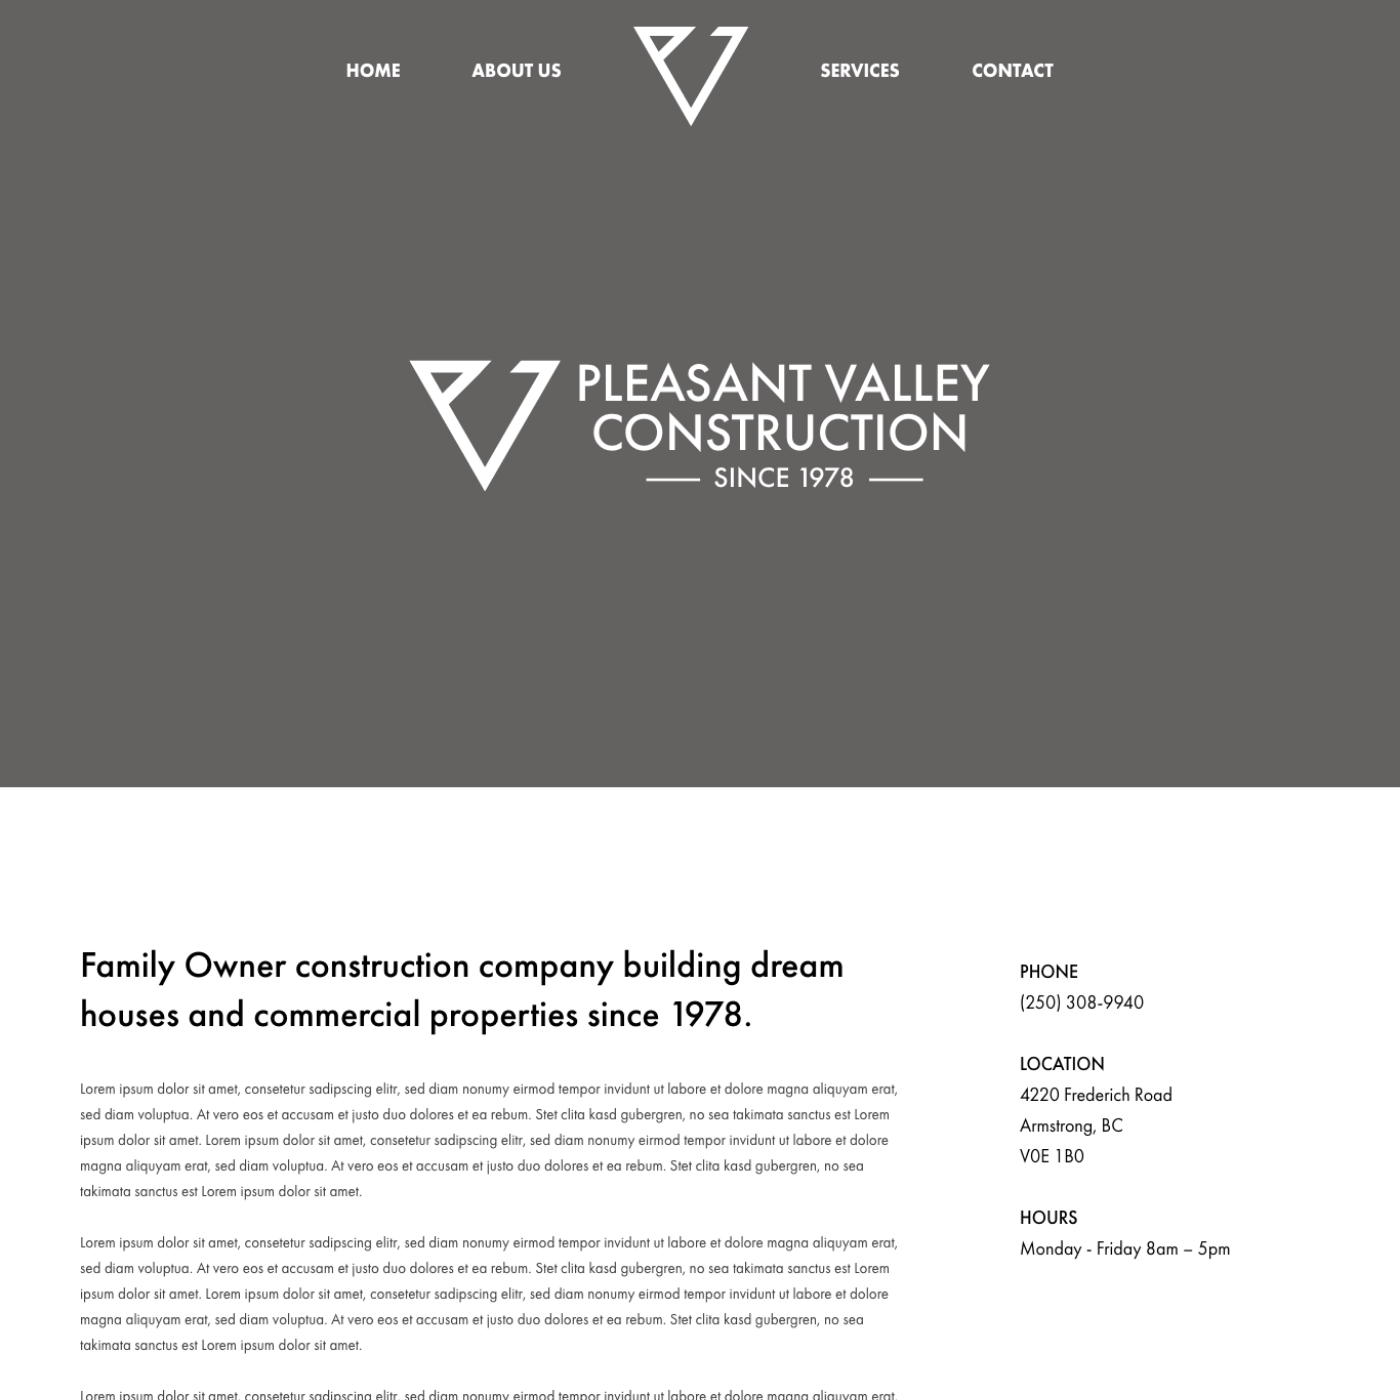 Pleasant Valley Construction - wireframe.png